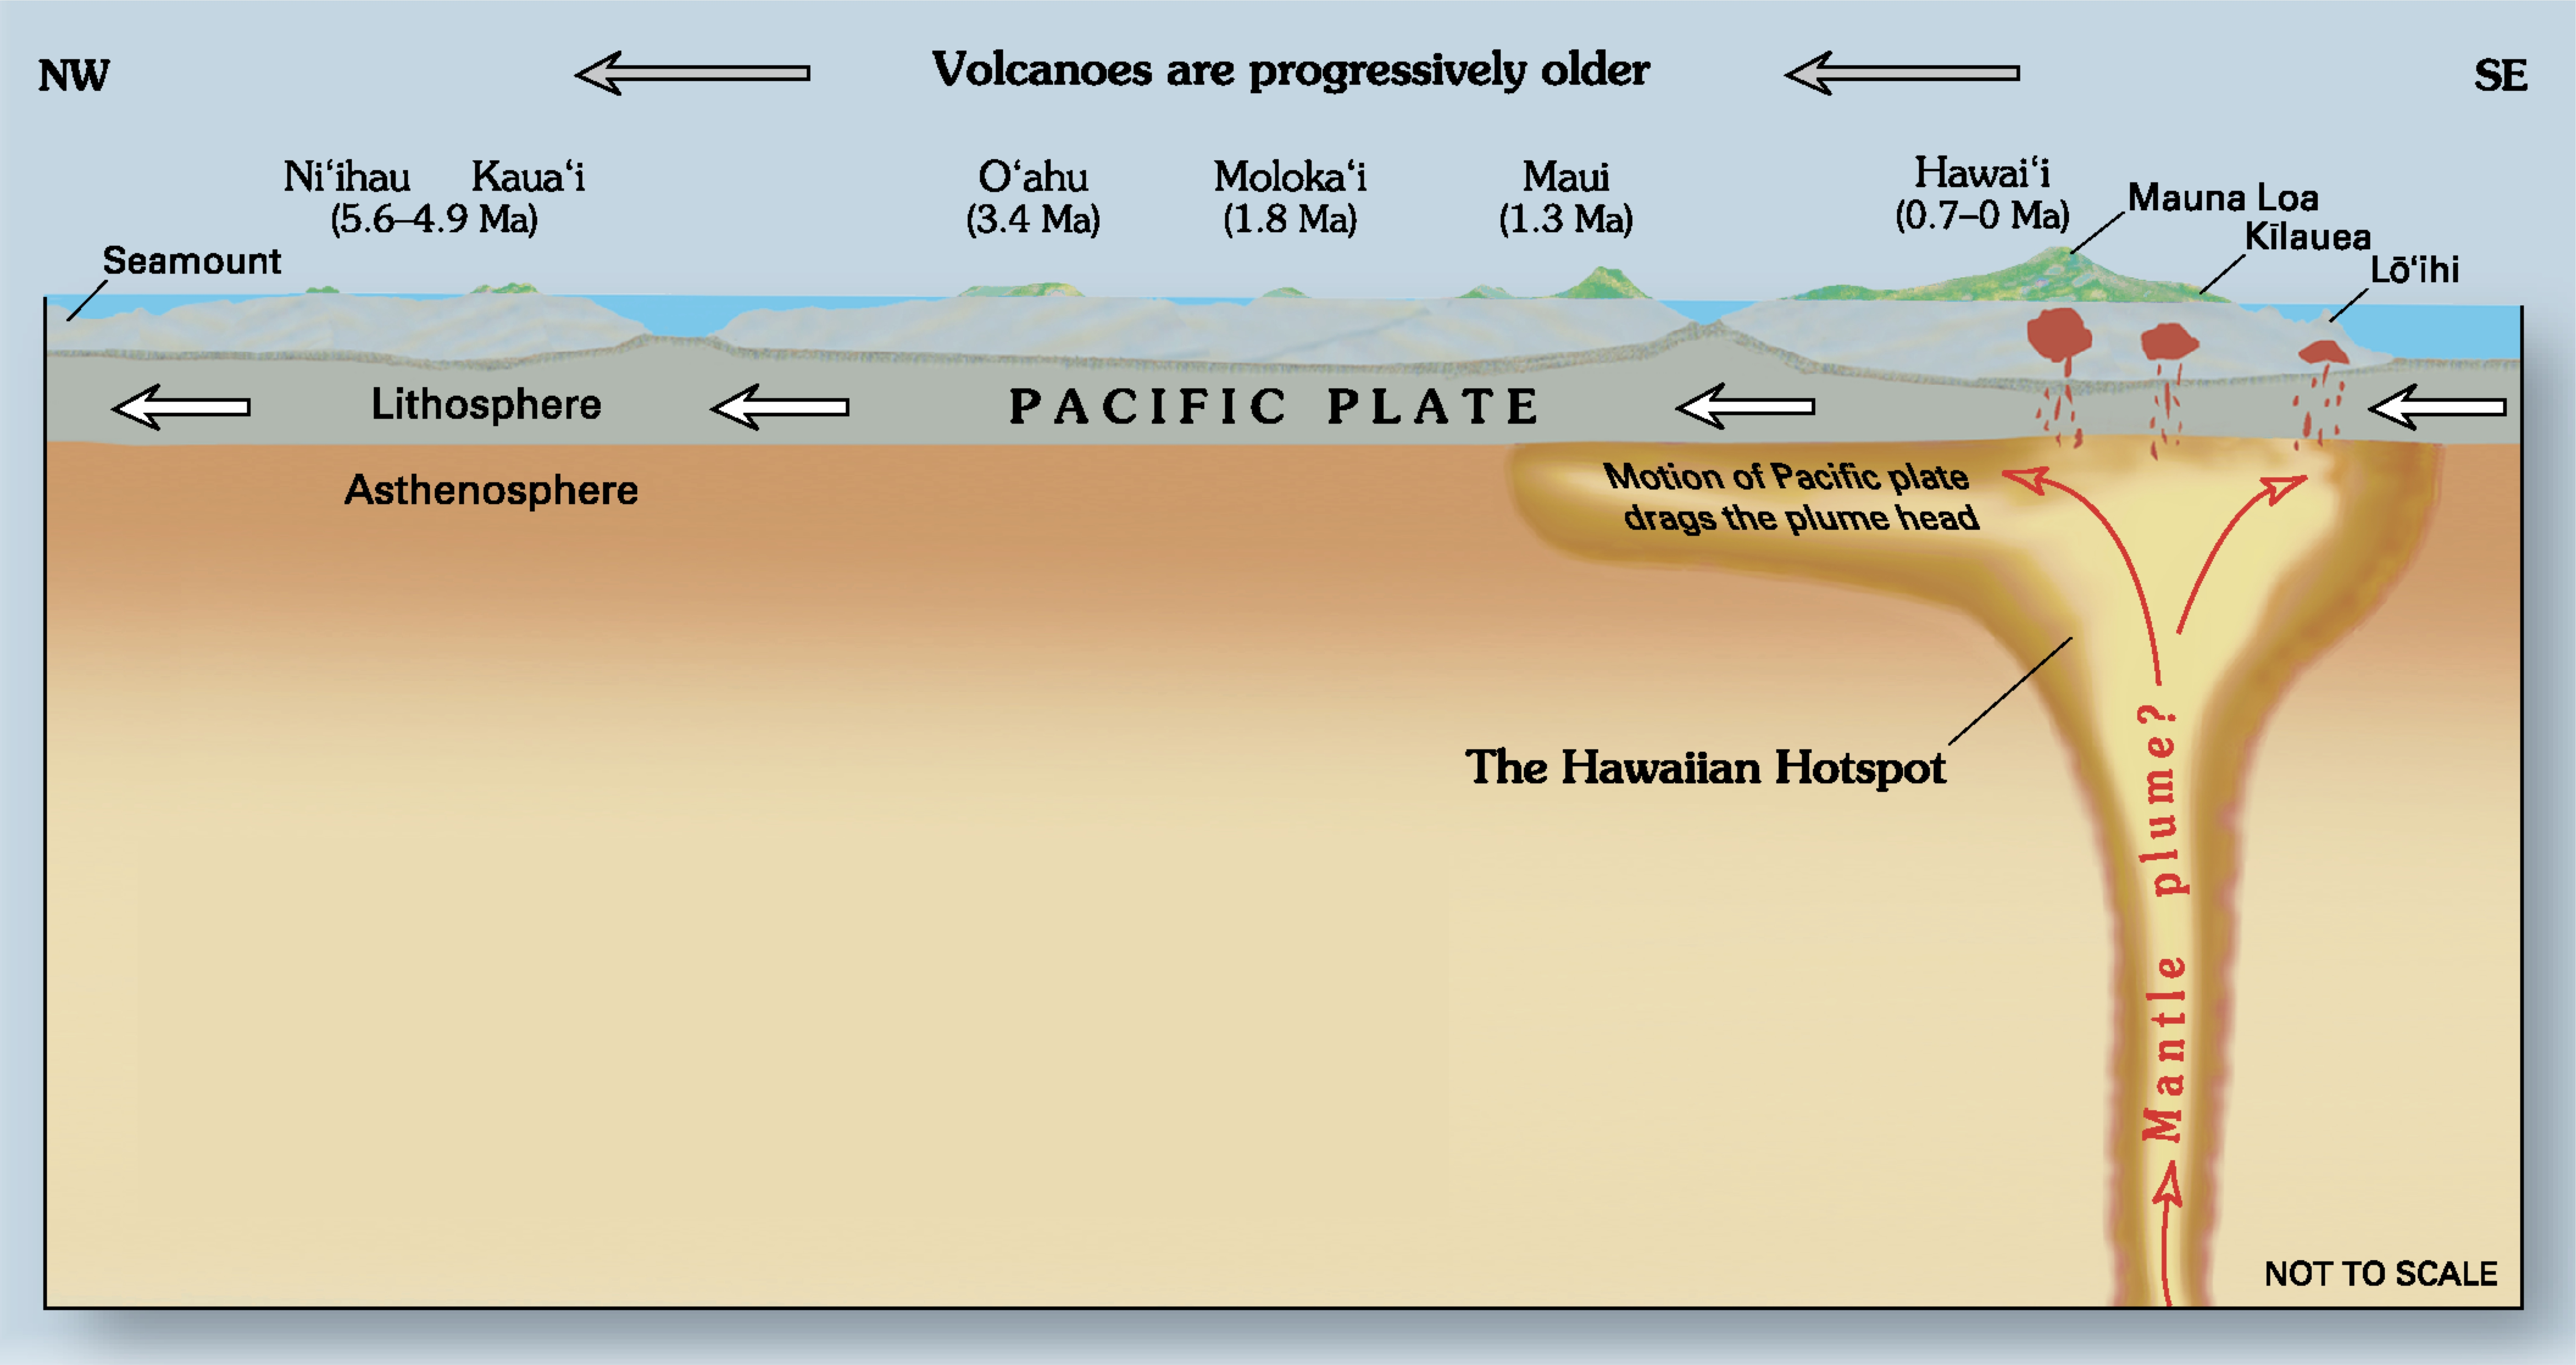 kilauea volcano diagram 2002 chevy trailblazer radio wiring file hawaii hotspot cross sectional jpg